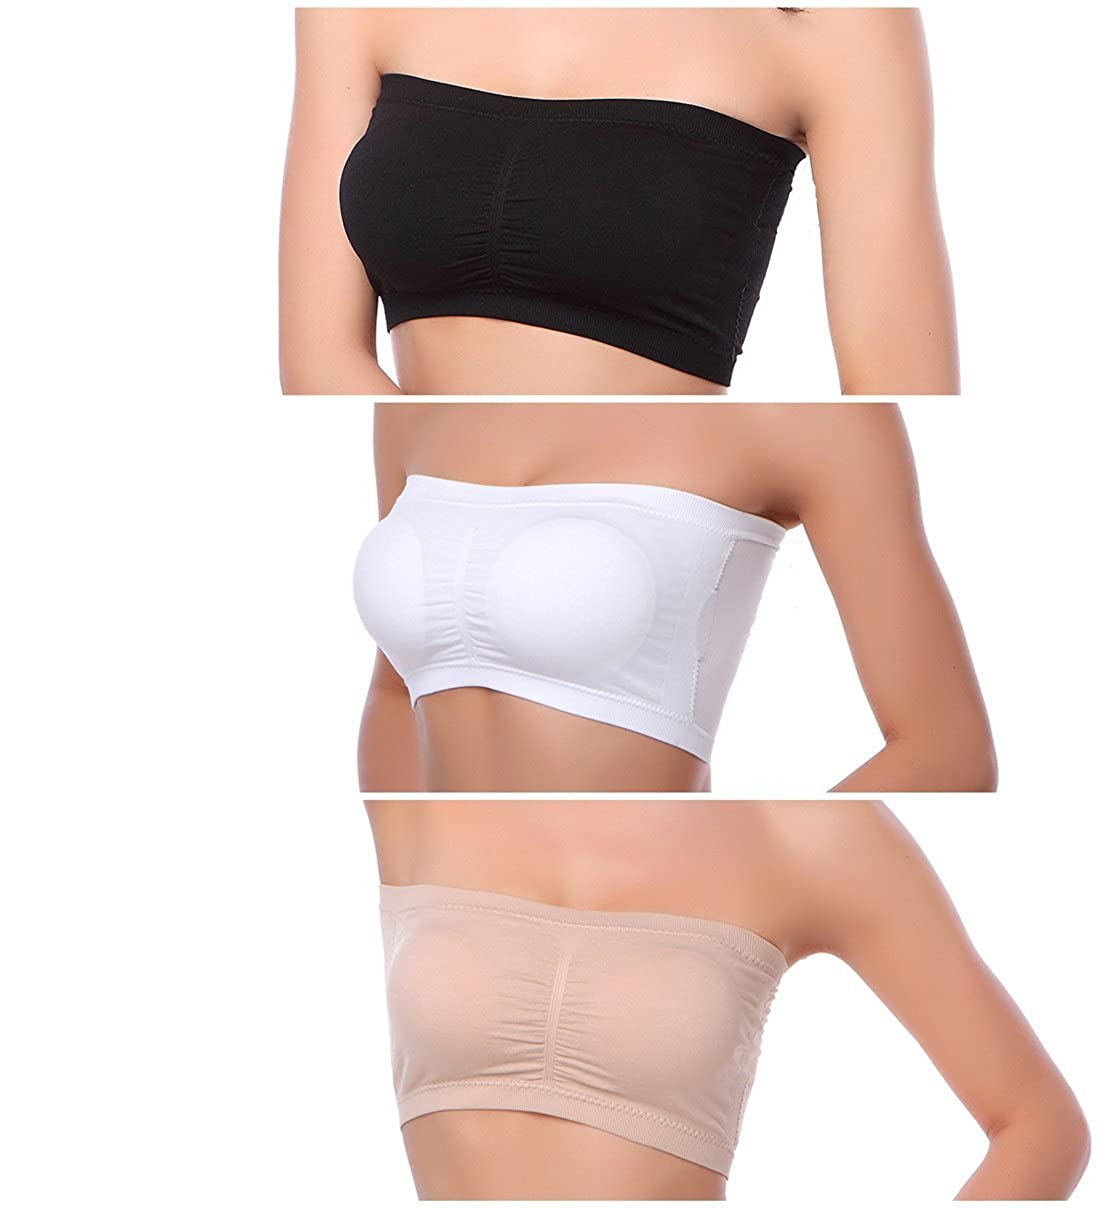 97e9d301a51 Xuvozta Women Bandeau Bra Support Solid Color Padded Tube Top Bra Soft  Stretch Strapless Bra (Black White Beige) L at Amazon Women s Clothing  store